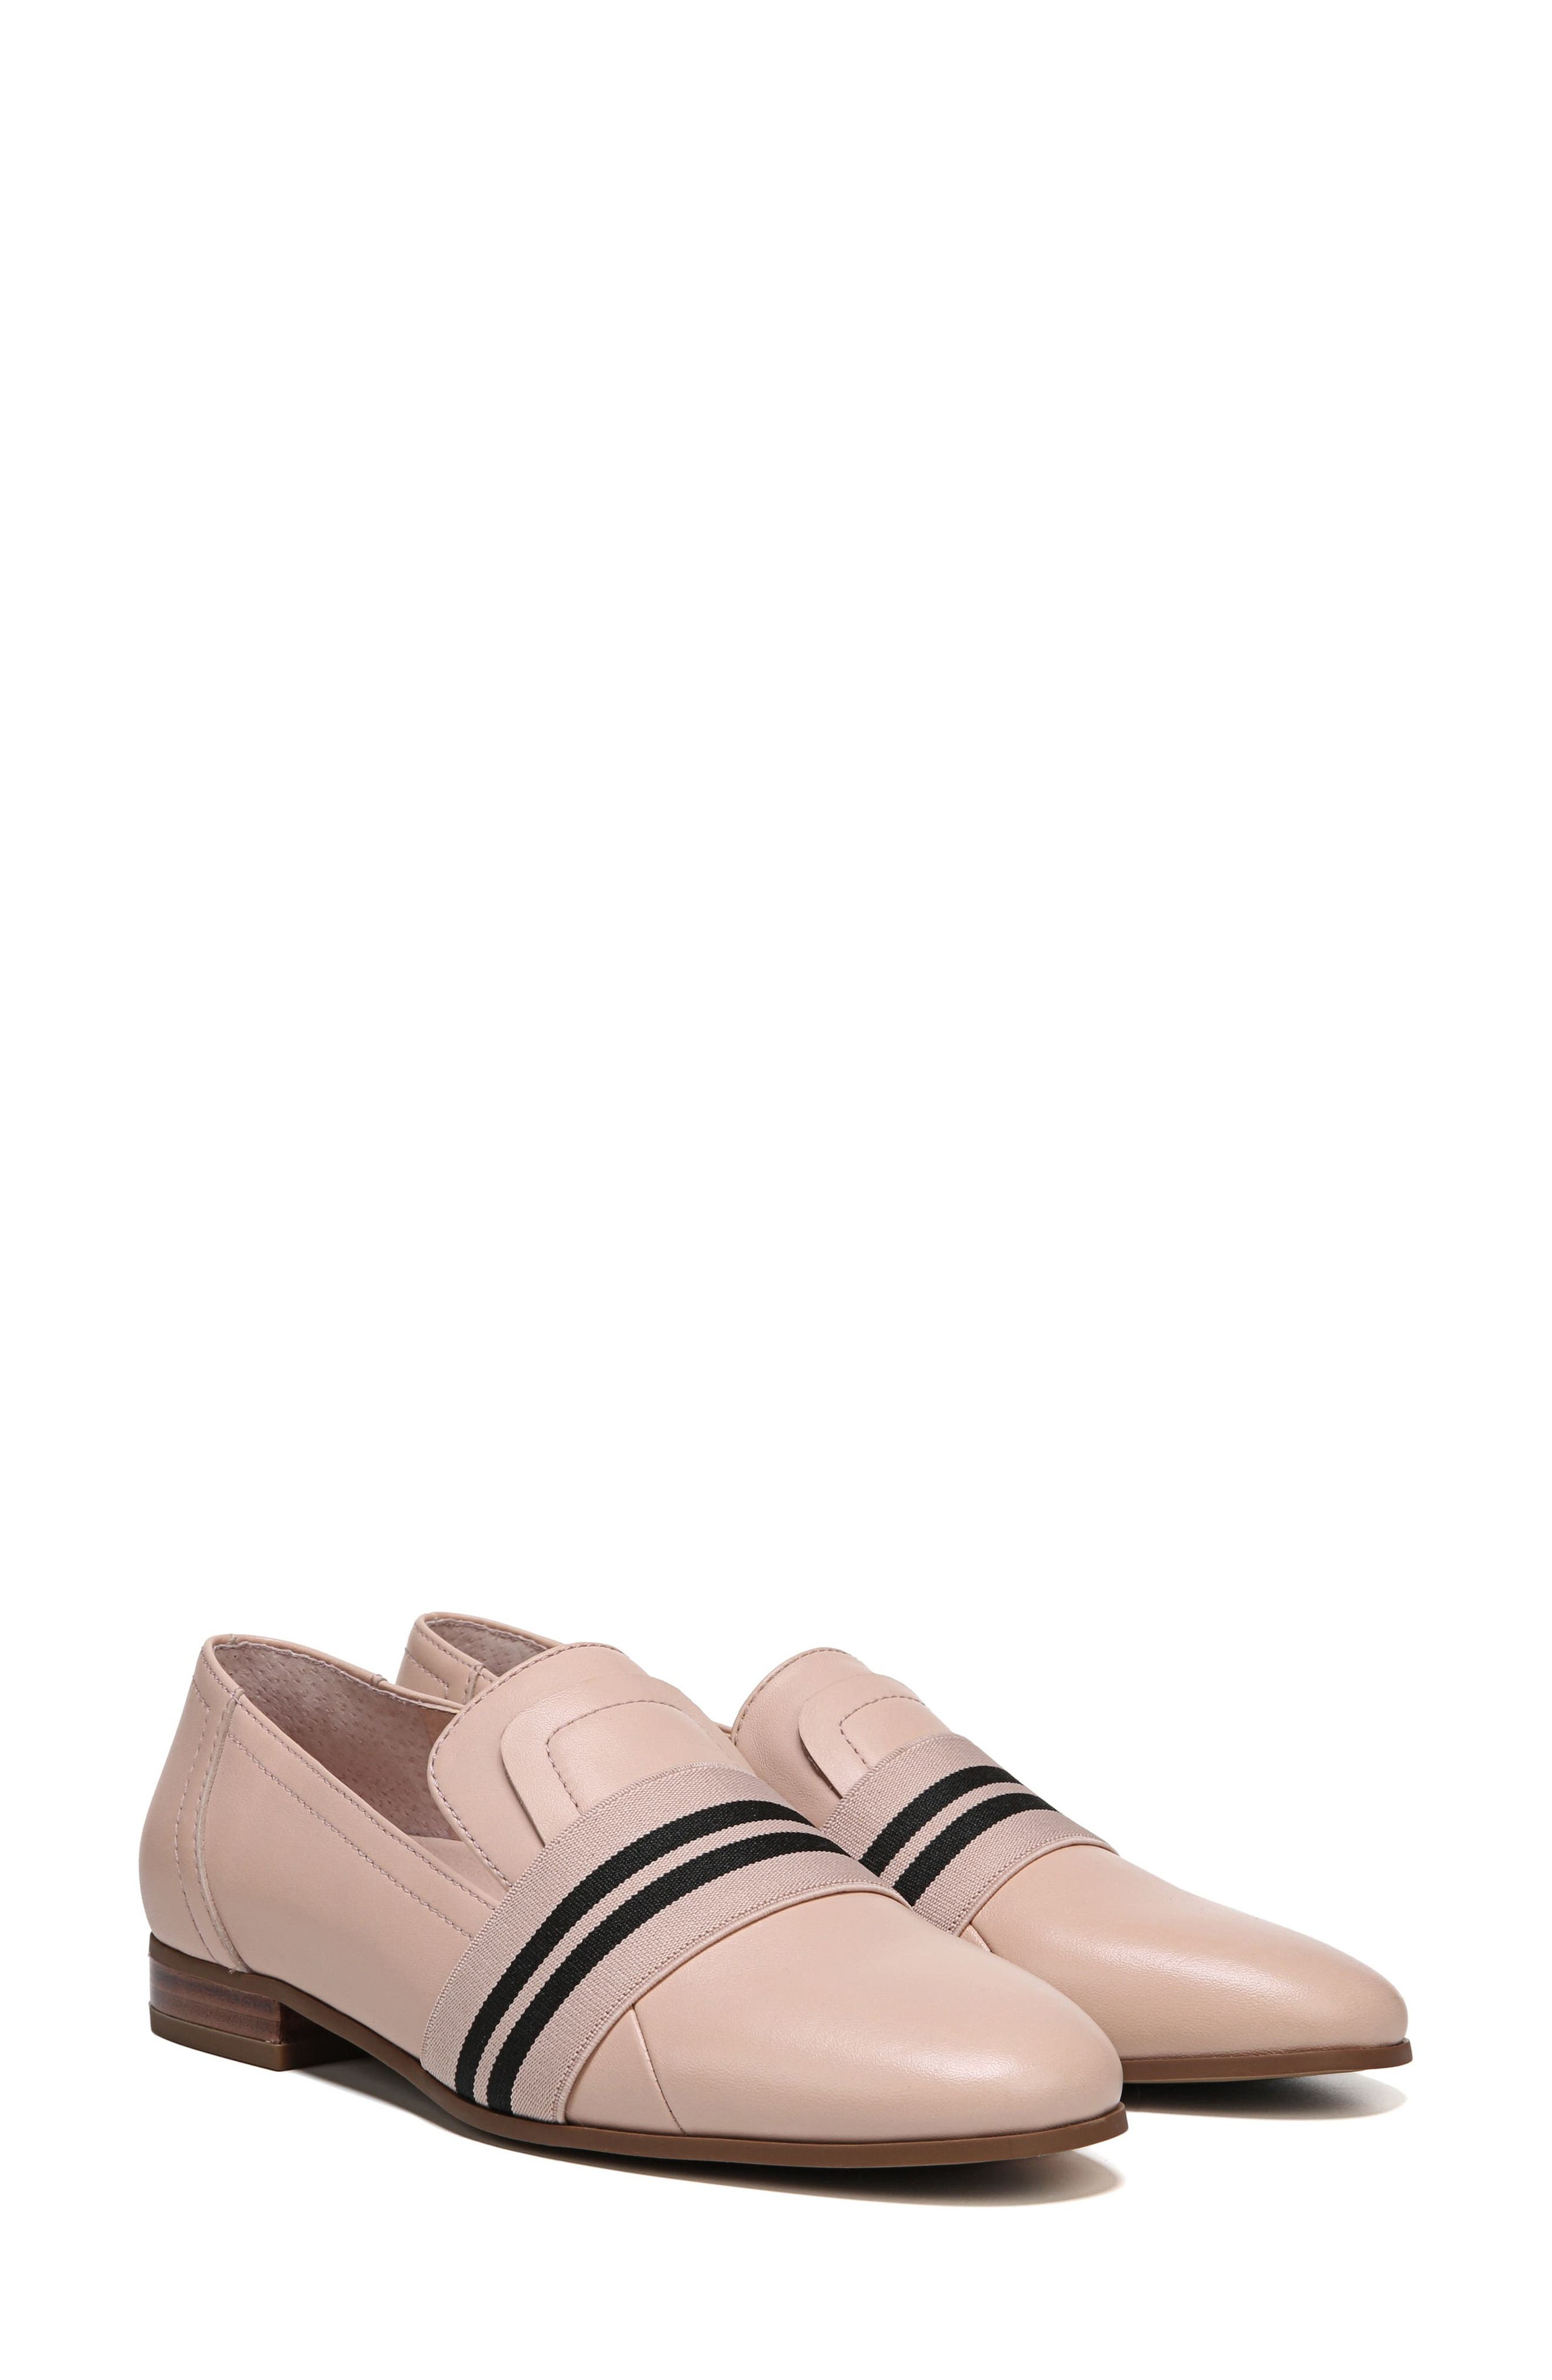 Odyssey Loafer,                             Alternate thumbnail 8, color,                             Blush Leather